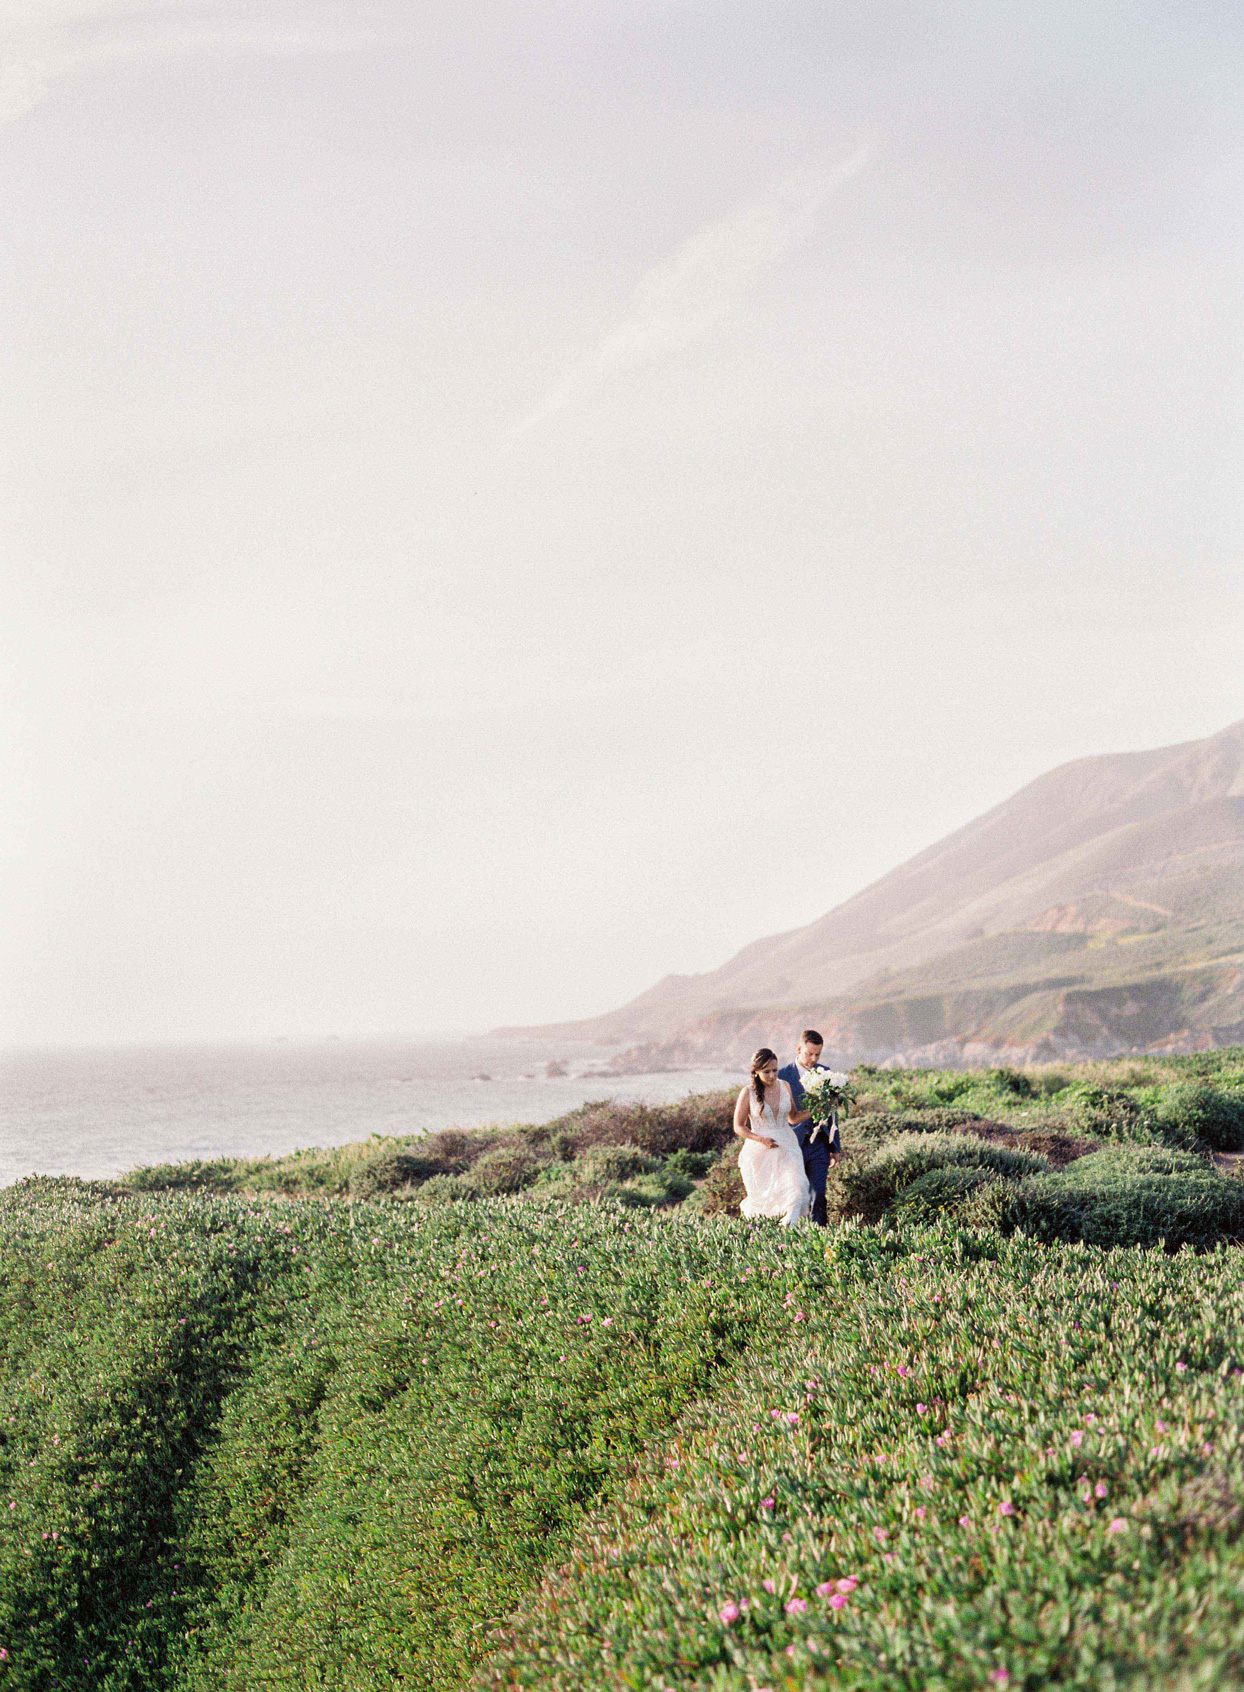 bride and groom walk through green field on cliff side